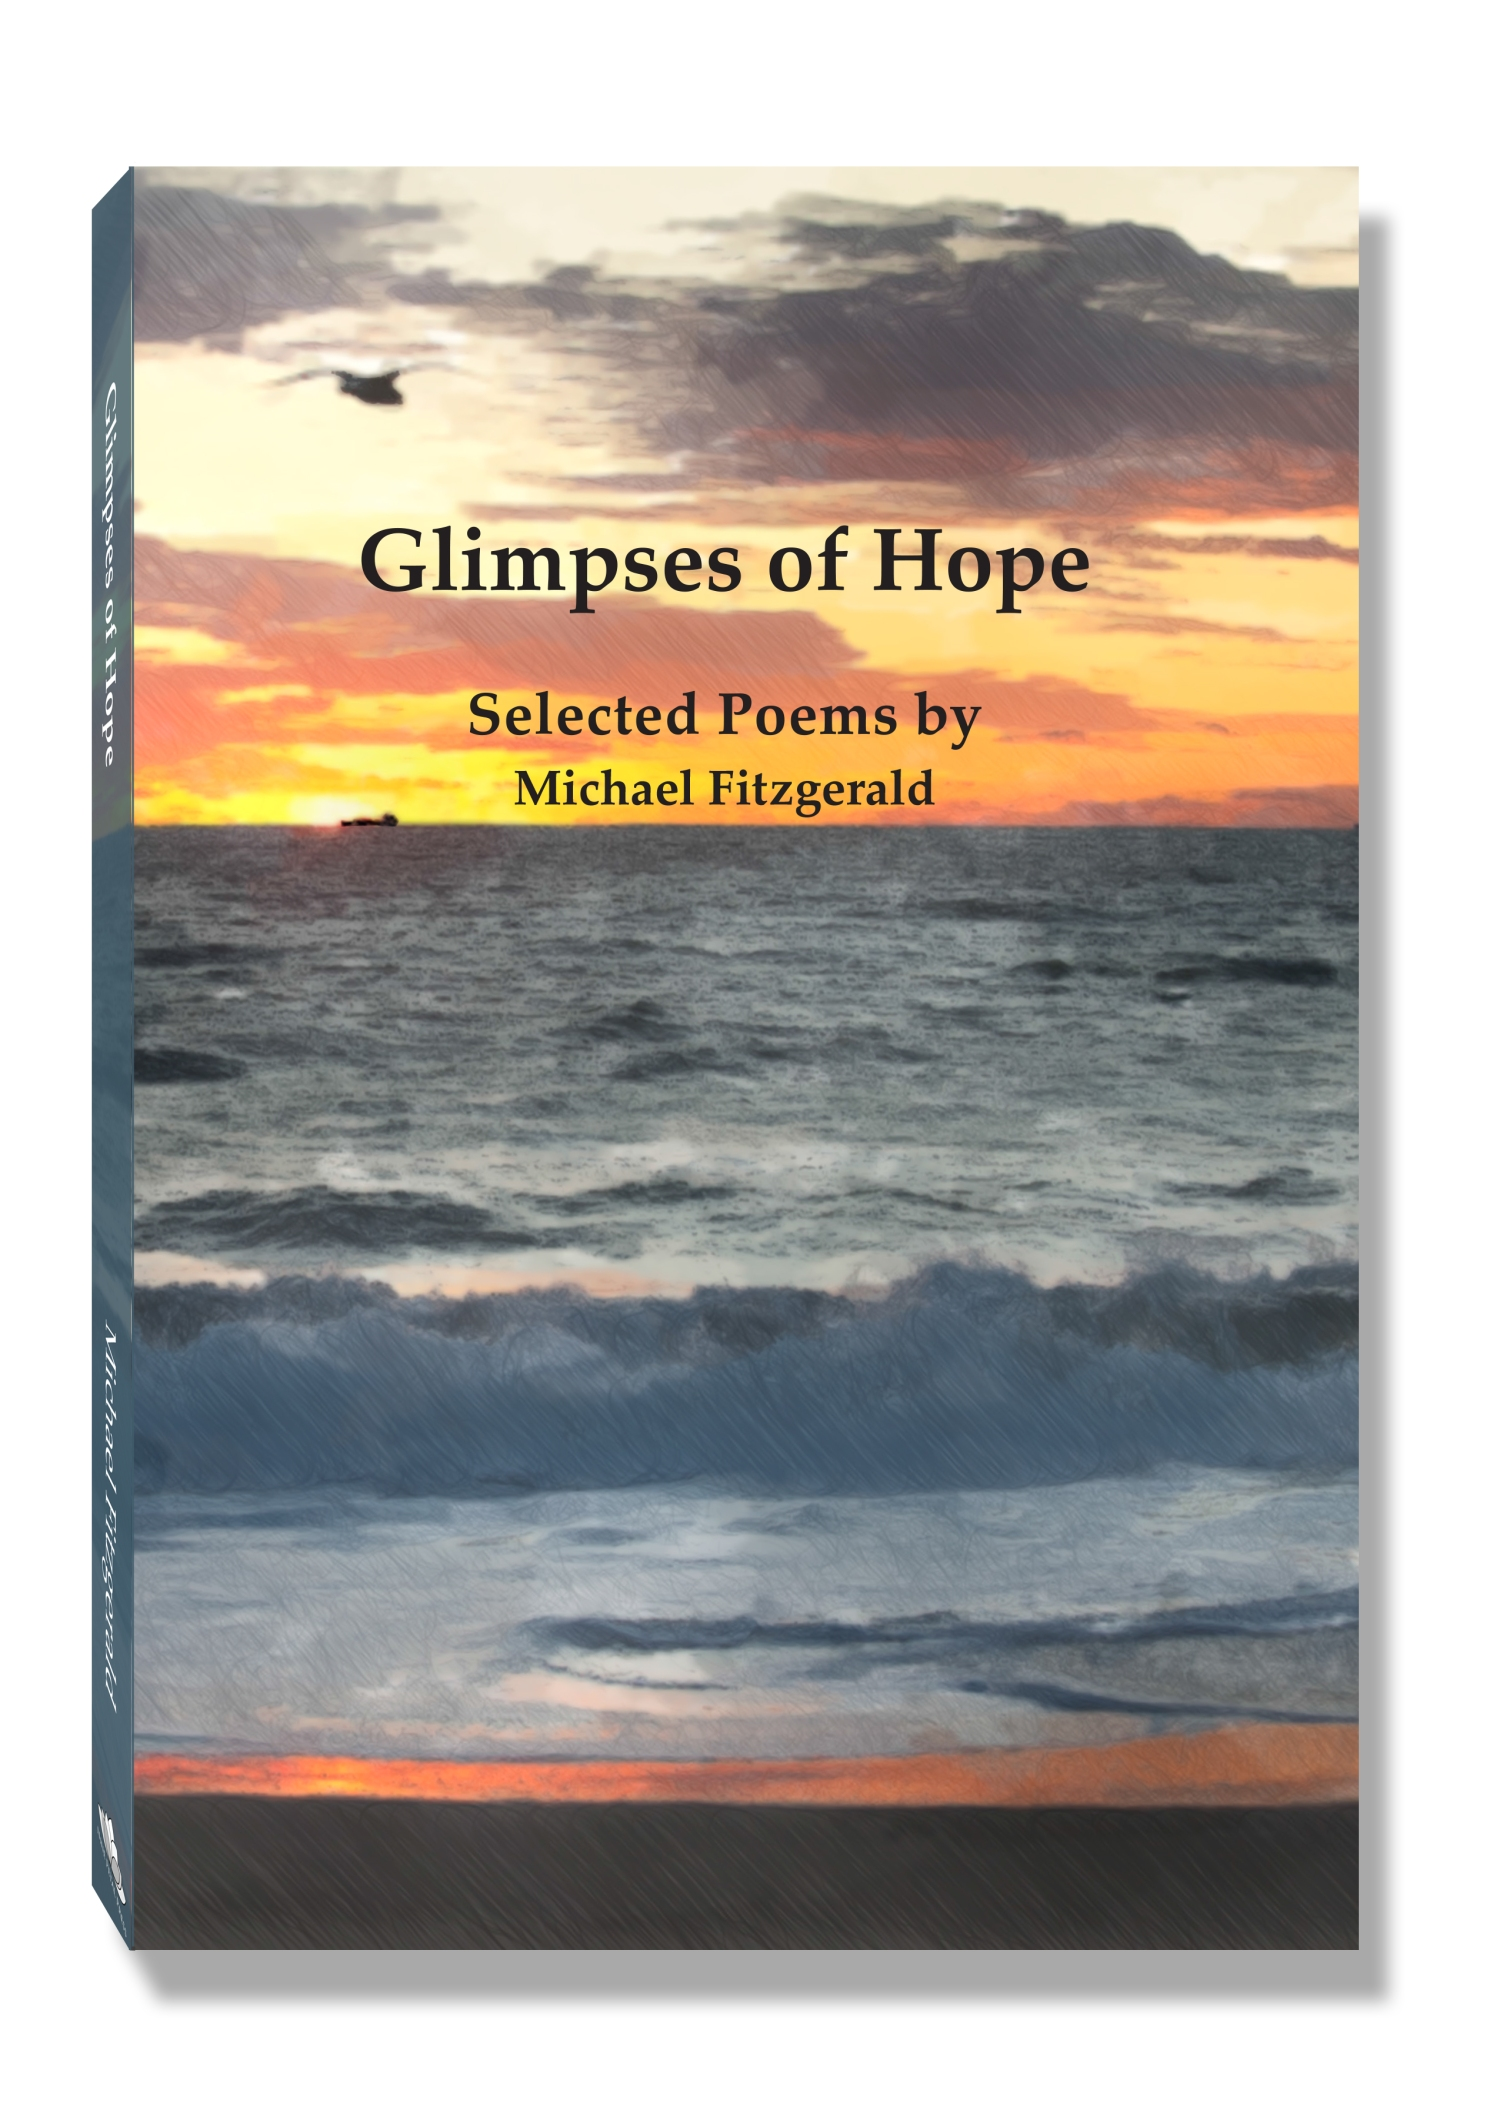 Glimpses of Hope: Selected Poems by Michael Fitzgerald